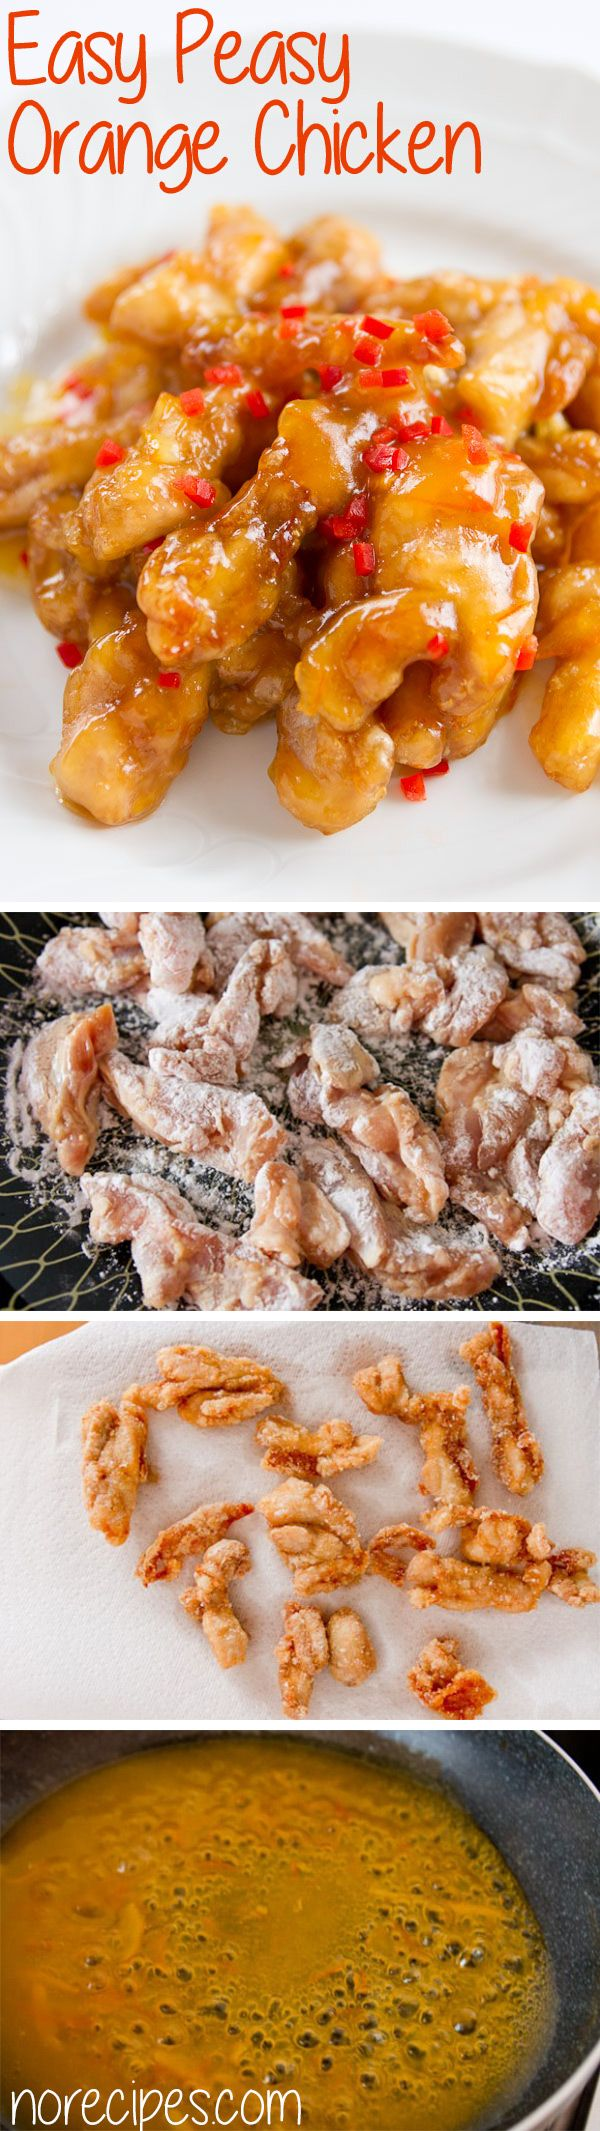 Flavorful marinated chicken with a sweet and tangy orange sauce.